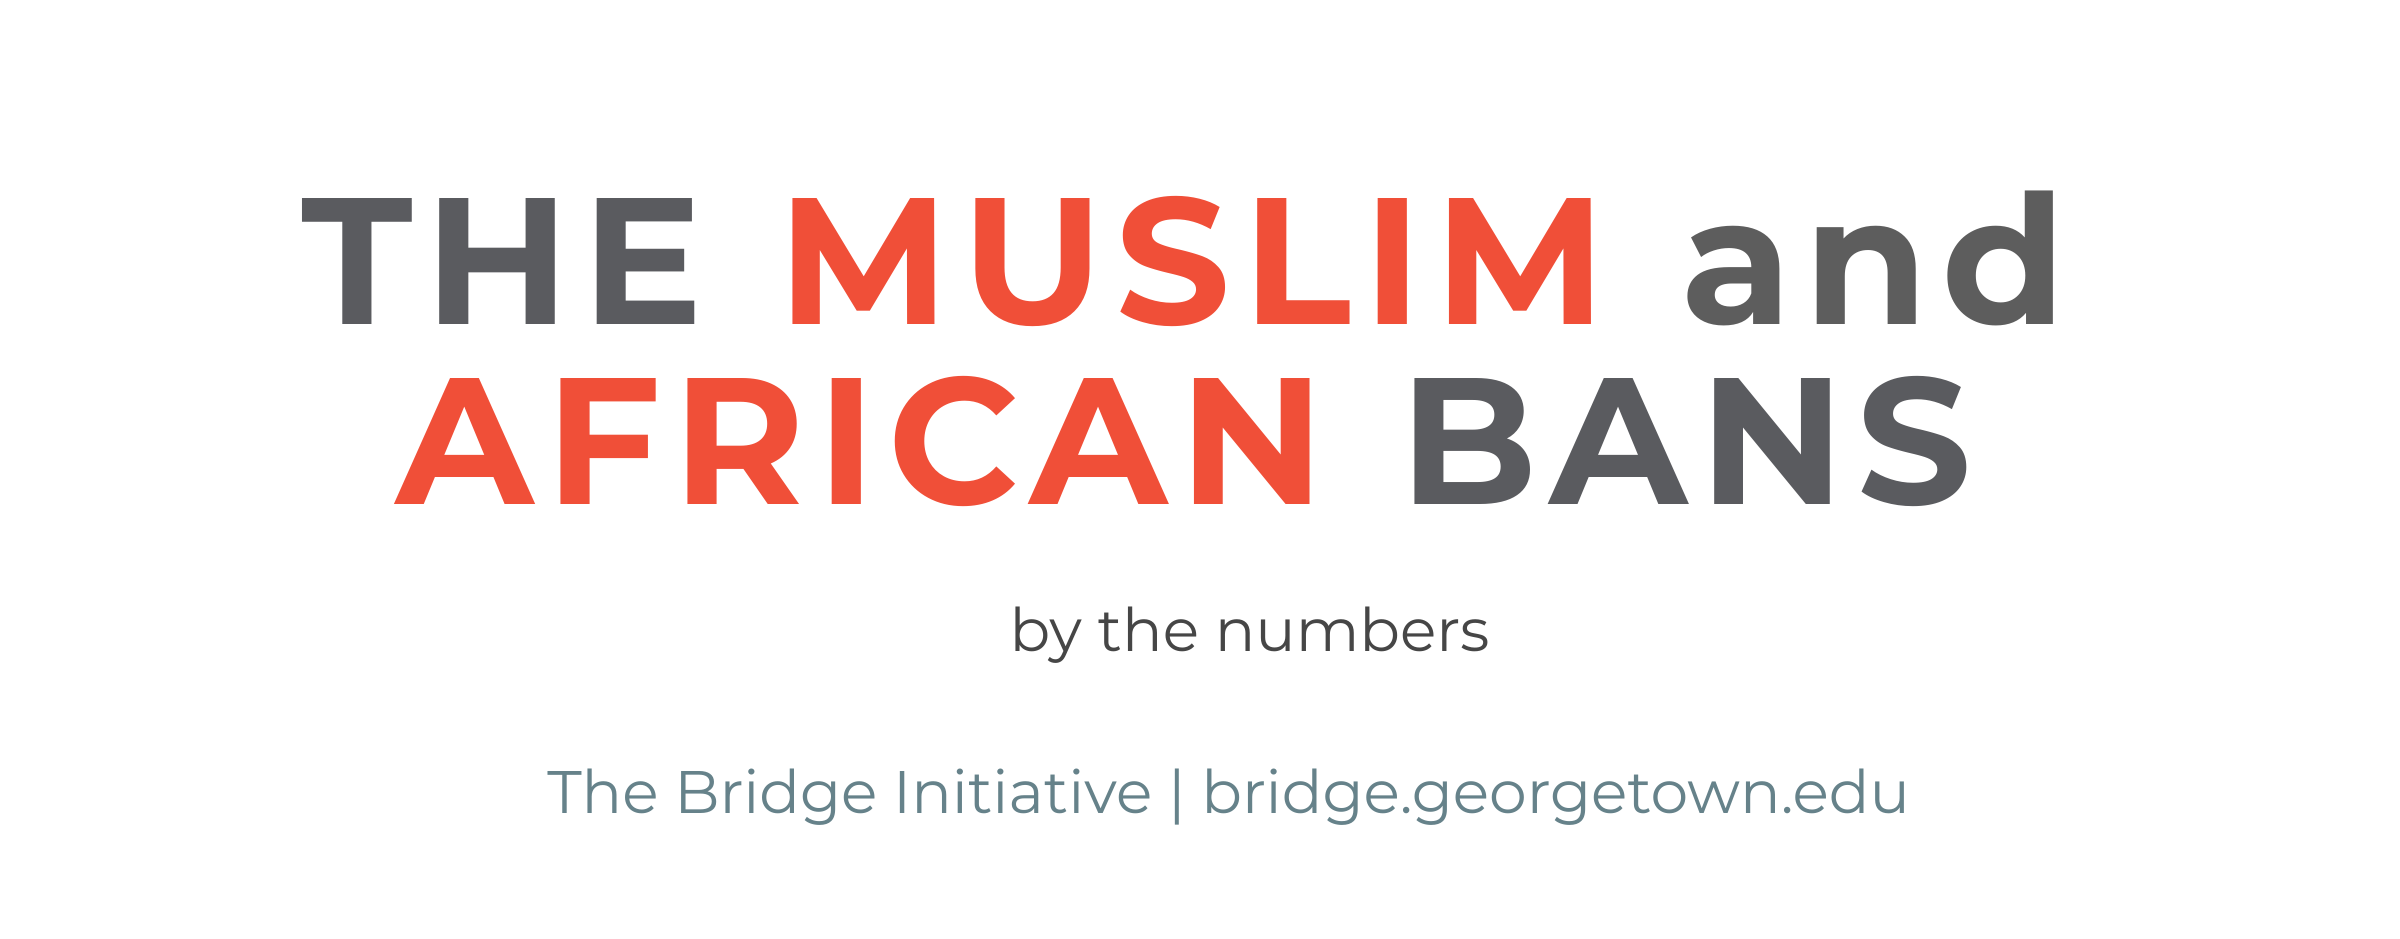 The Muslim and African Bans: by the numbers